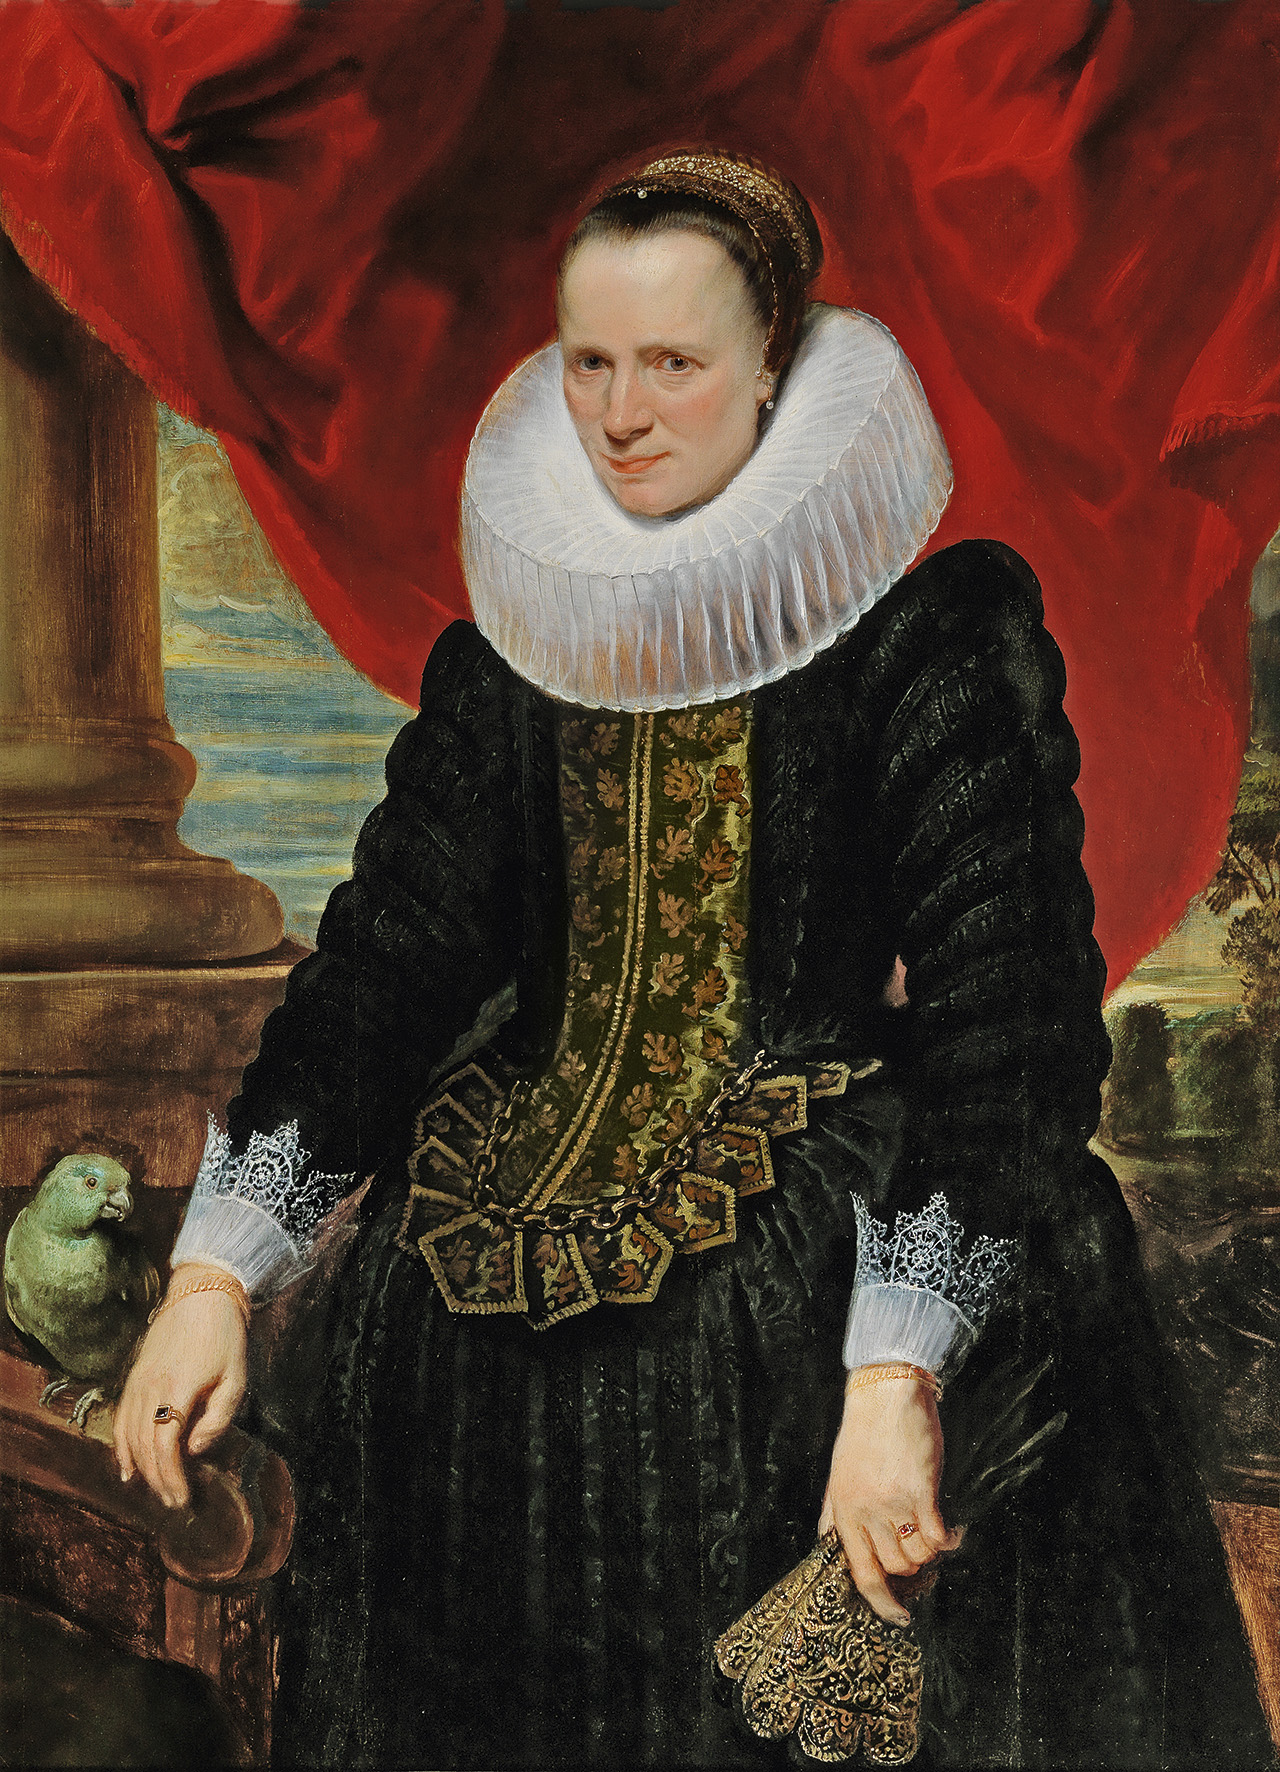 Anthony van Dyck (1599 - 1641) Portrait of a Noblewoman with a parrot, oil on panel, 121 x 88 cm, realised price € 1,425,000